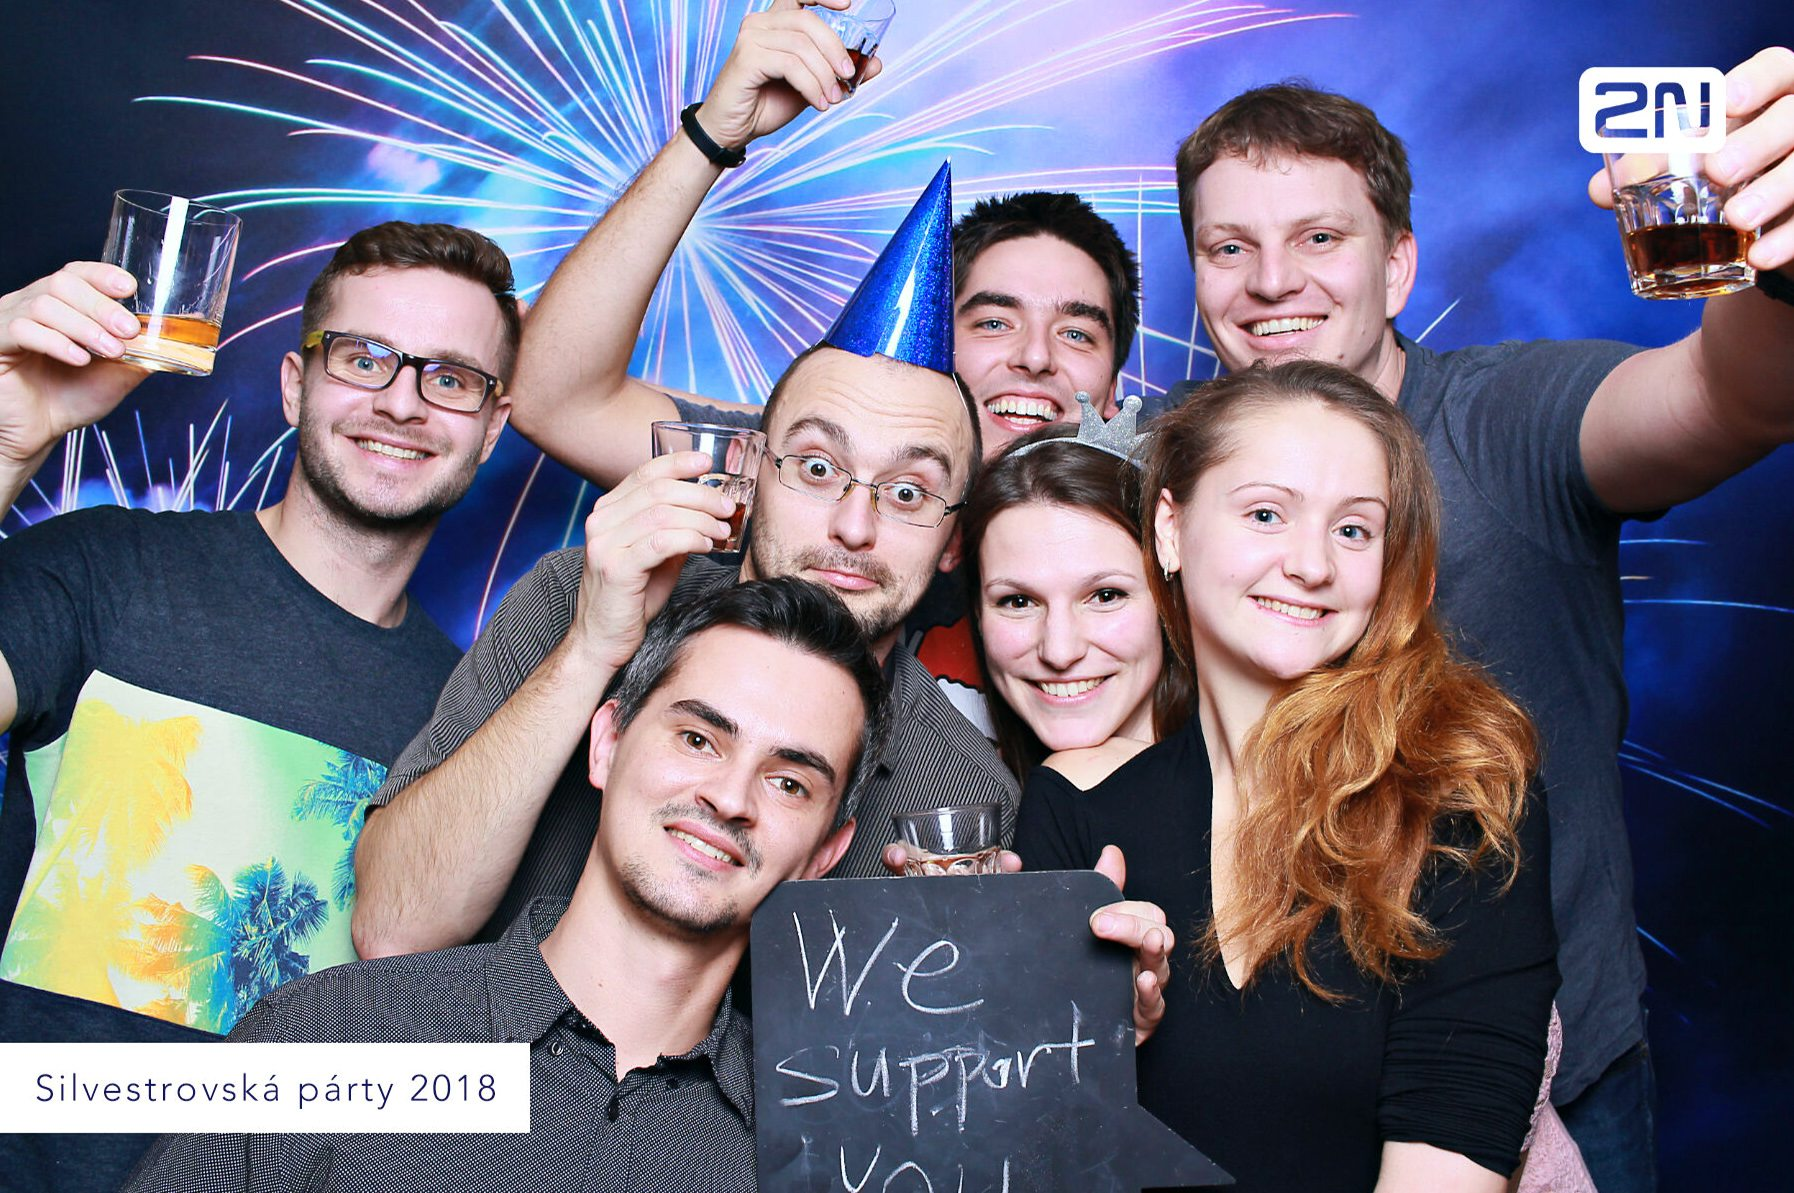 fotokoutek-2n-silvestrovska-party-15-12-2017-368094